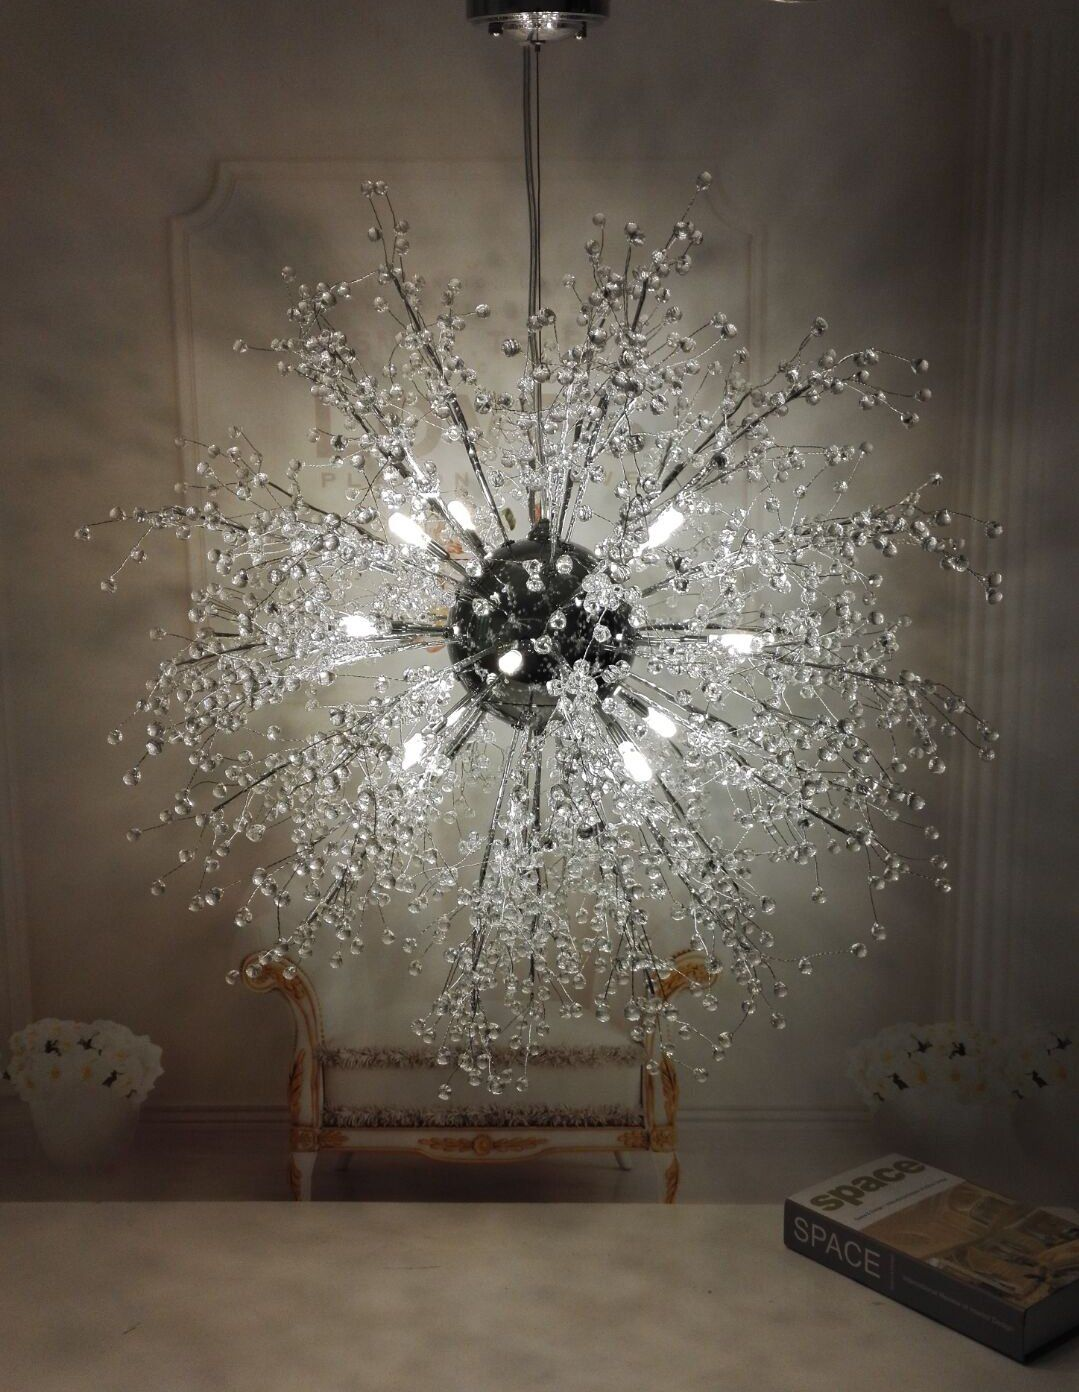 Gdns Chandeliers Firework Led Light Stainless Steel Crystal Pendant Lighting Ceiling Fixtures